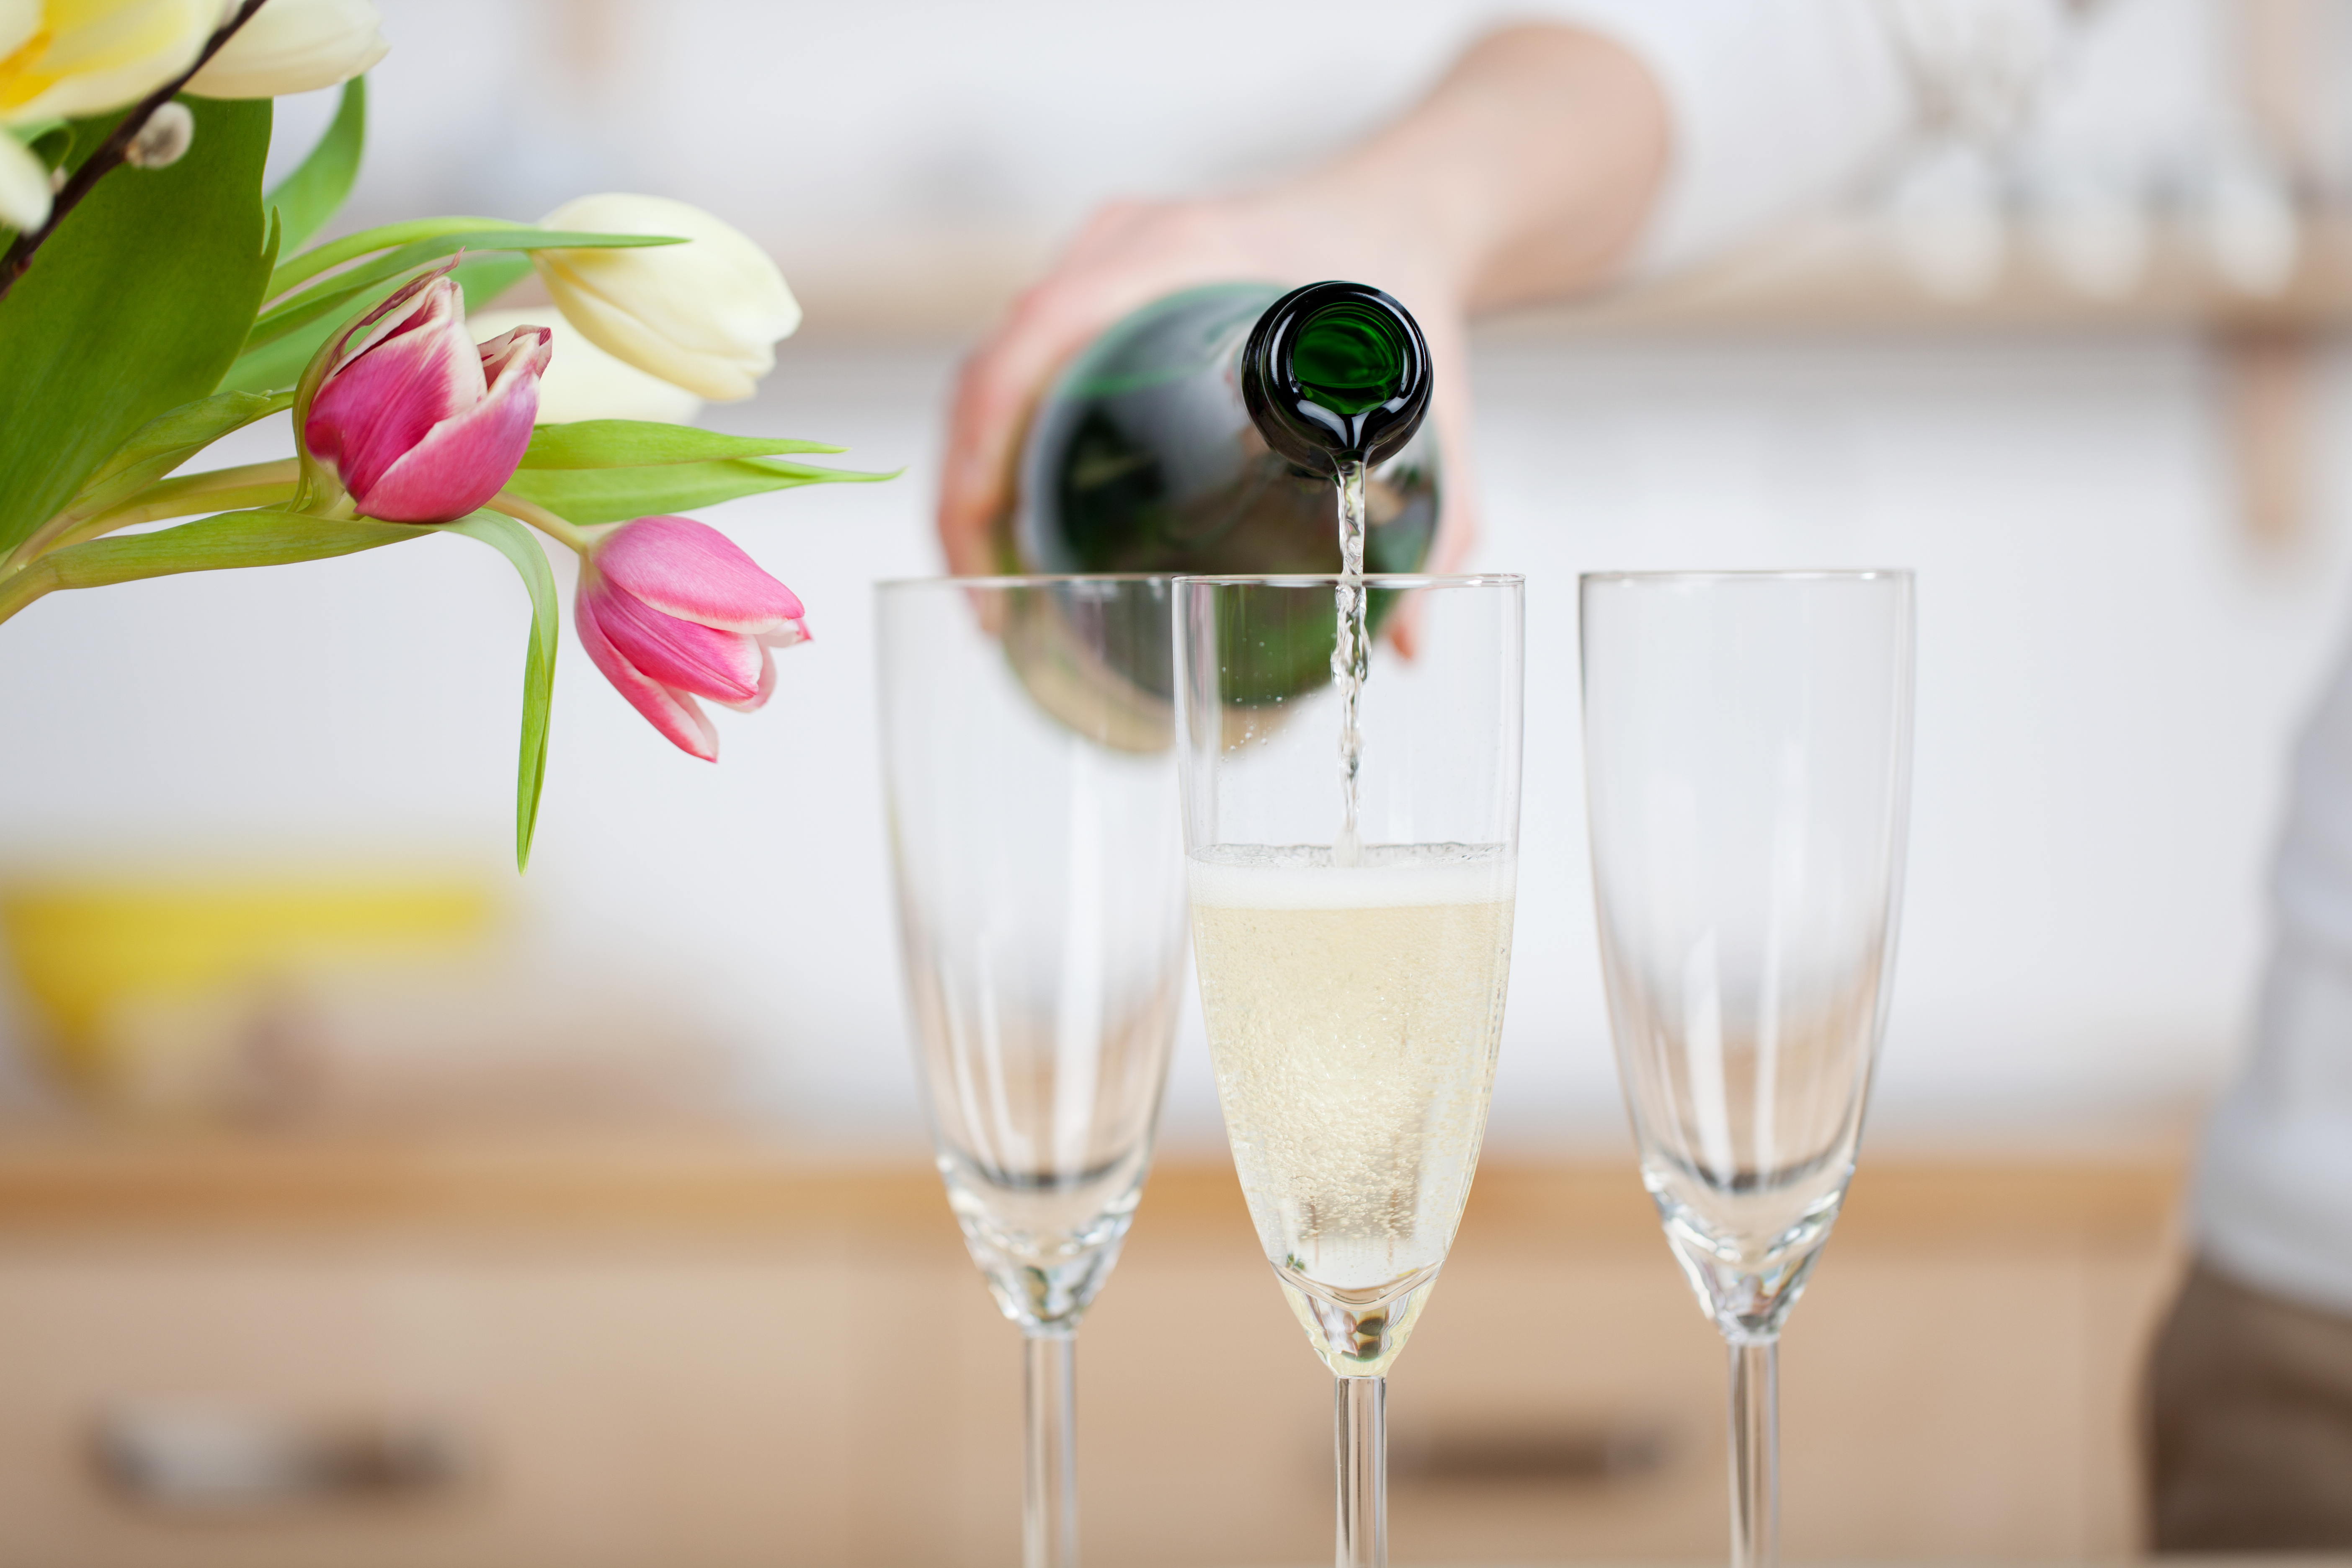 Phil Dooly – The Science Behind Your Christmas Bubbly